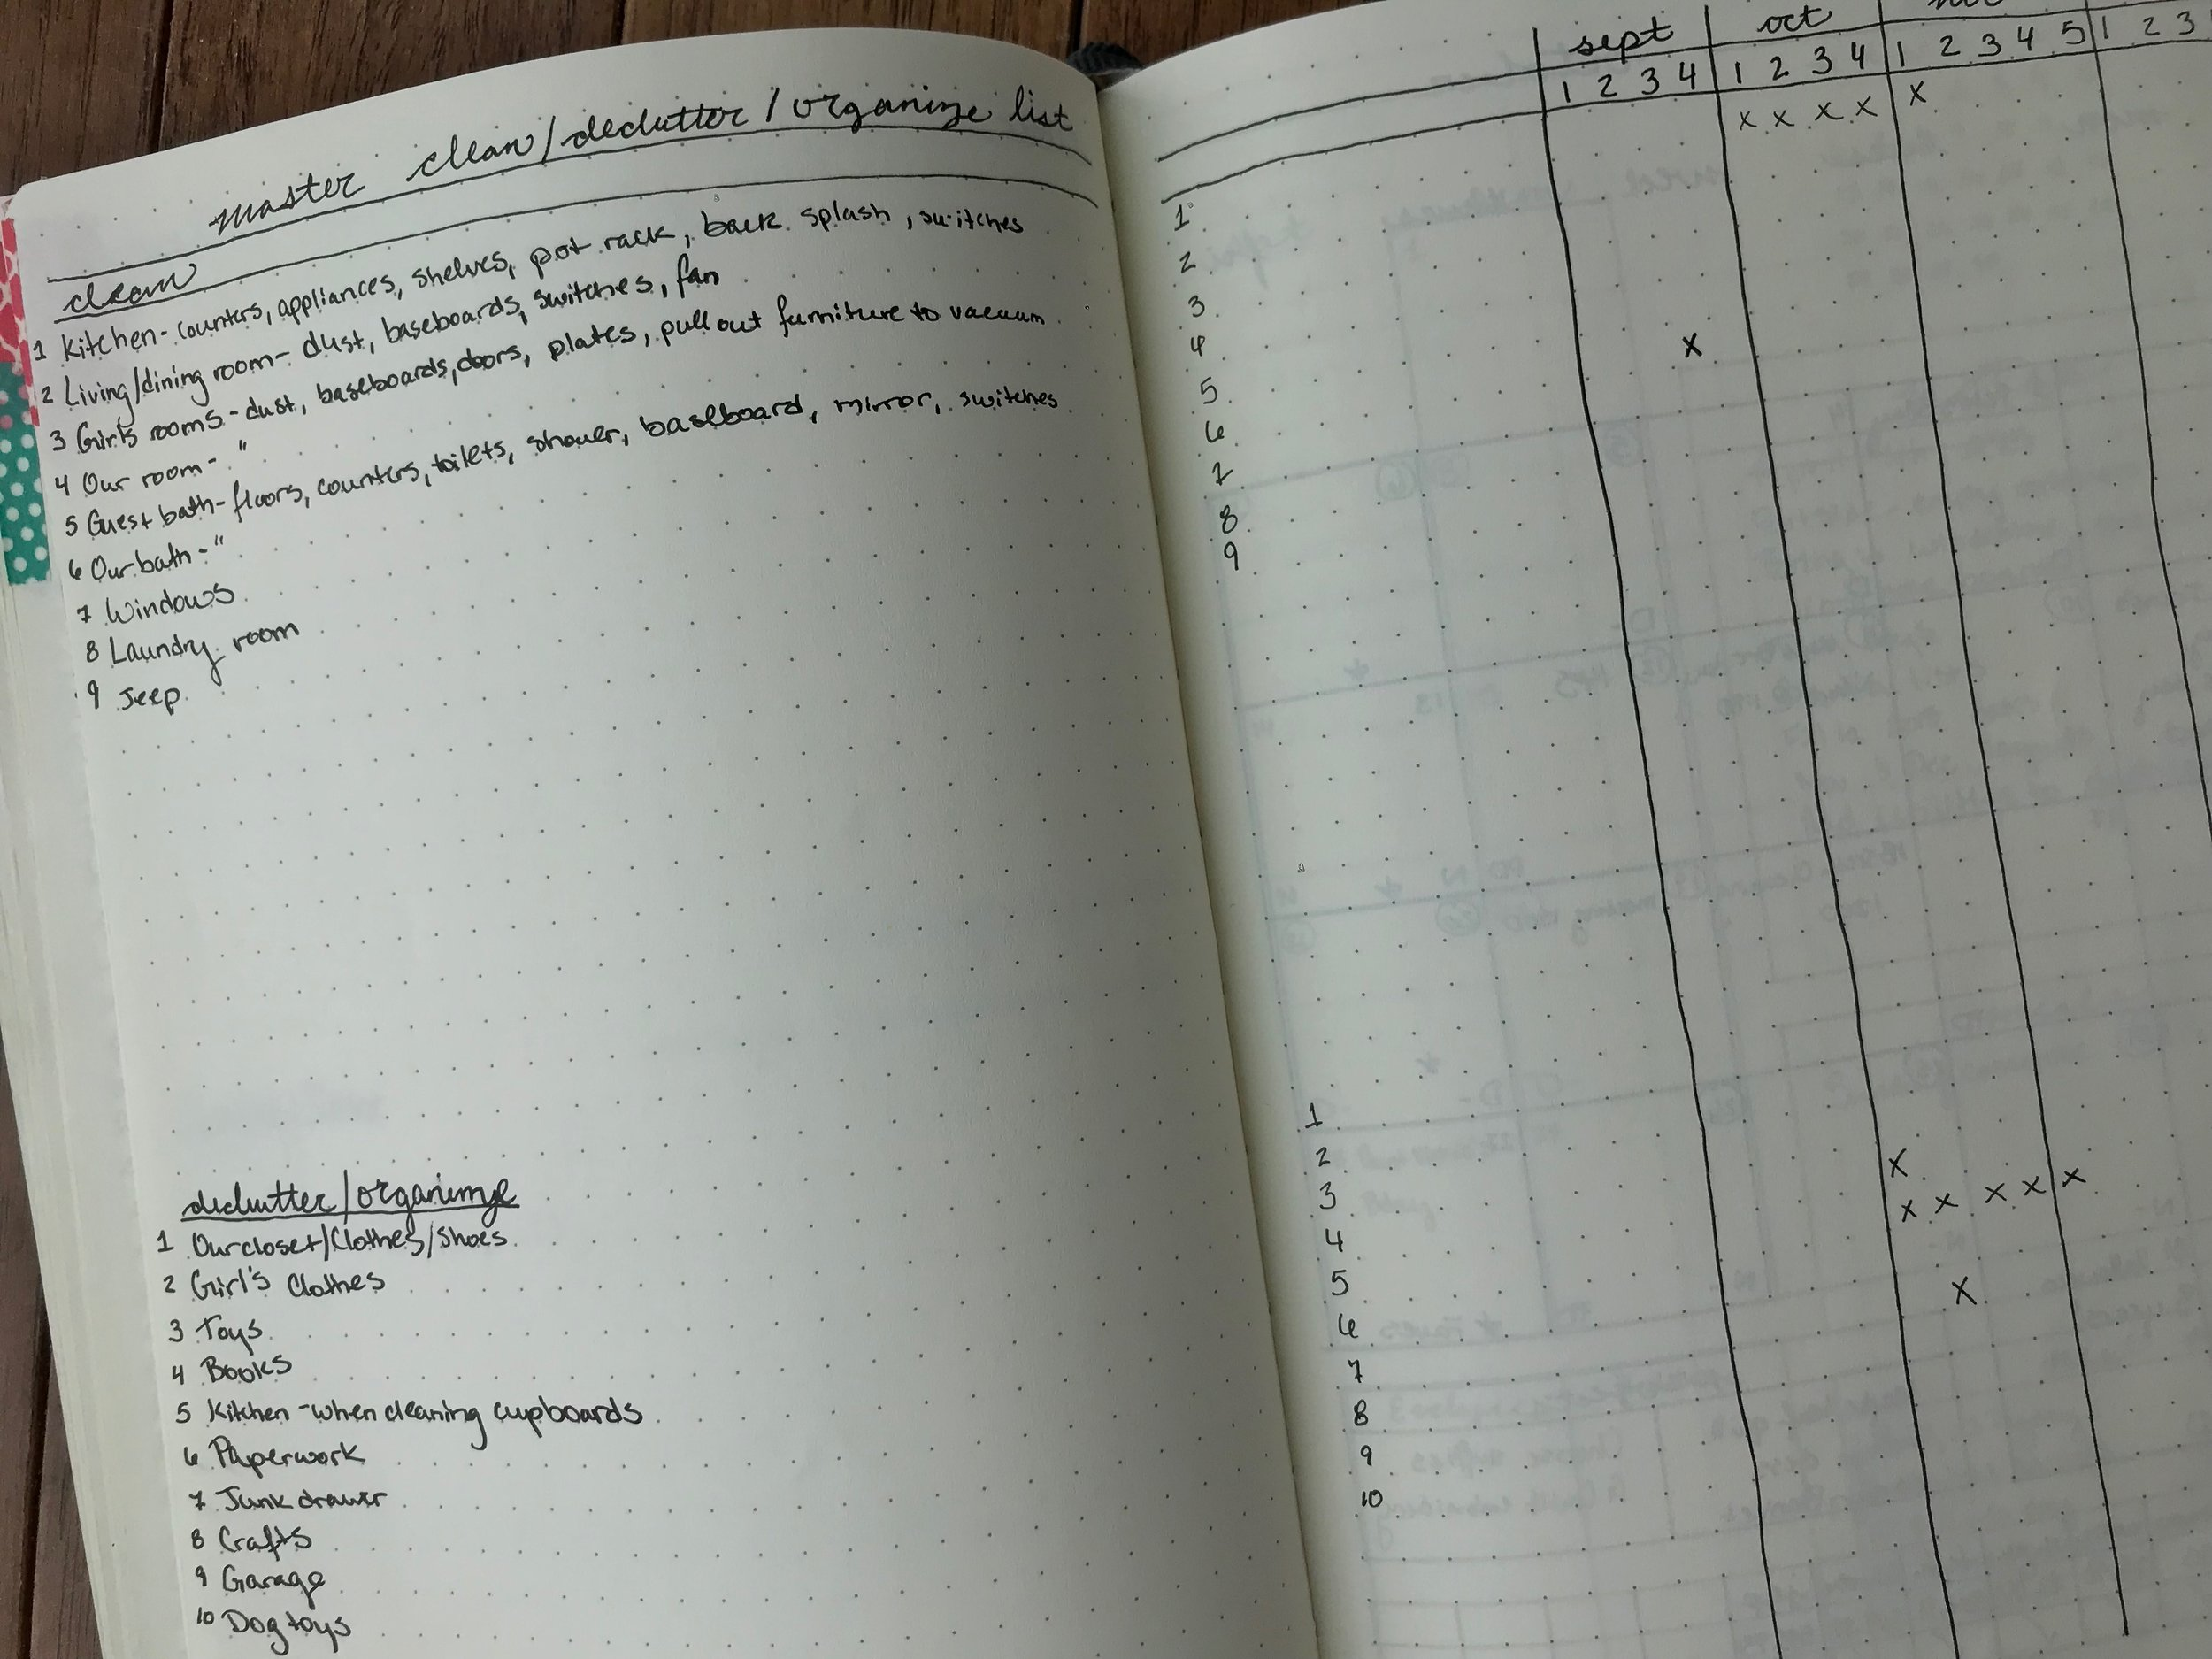 A Master Cleaning Tracker